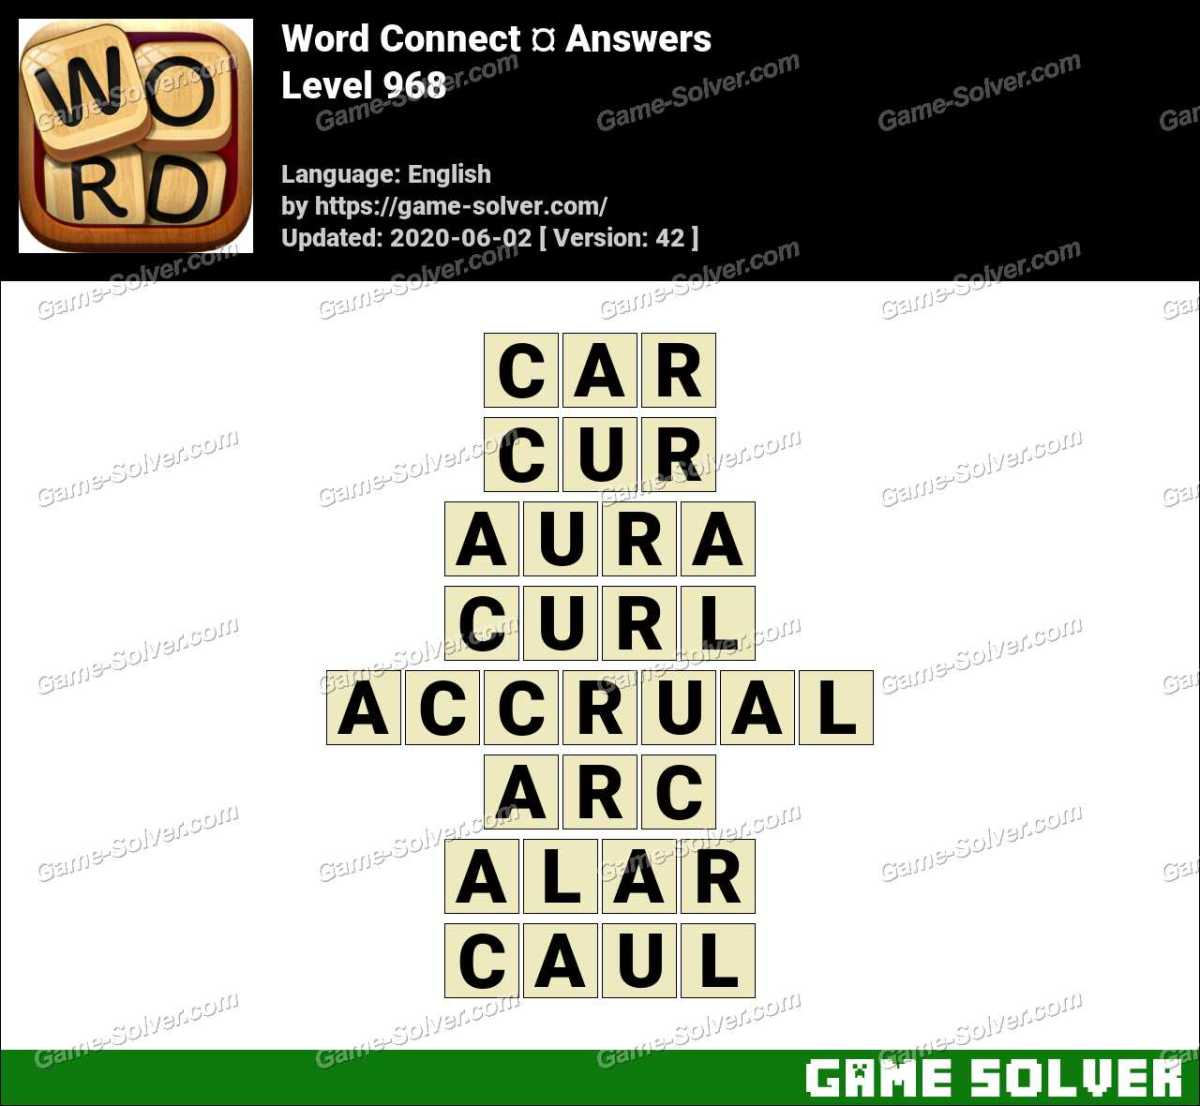 Word Connect Level 968 Answers